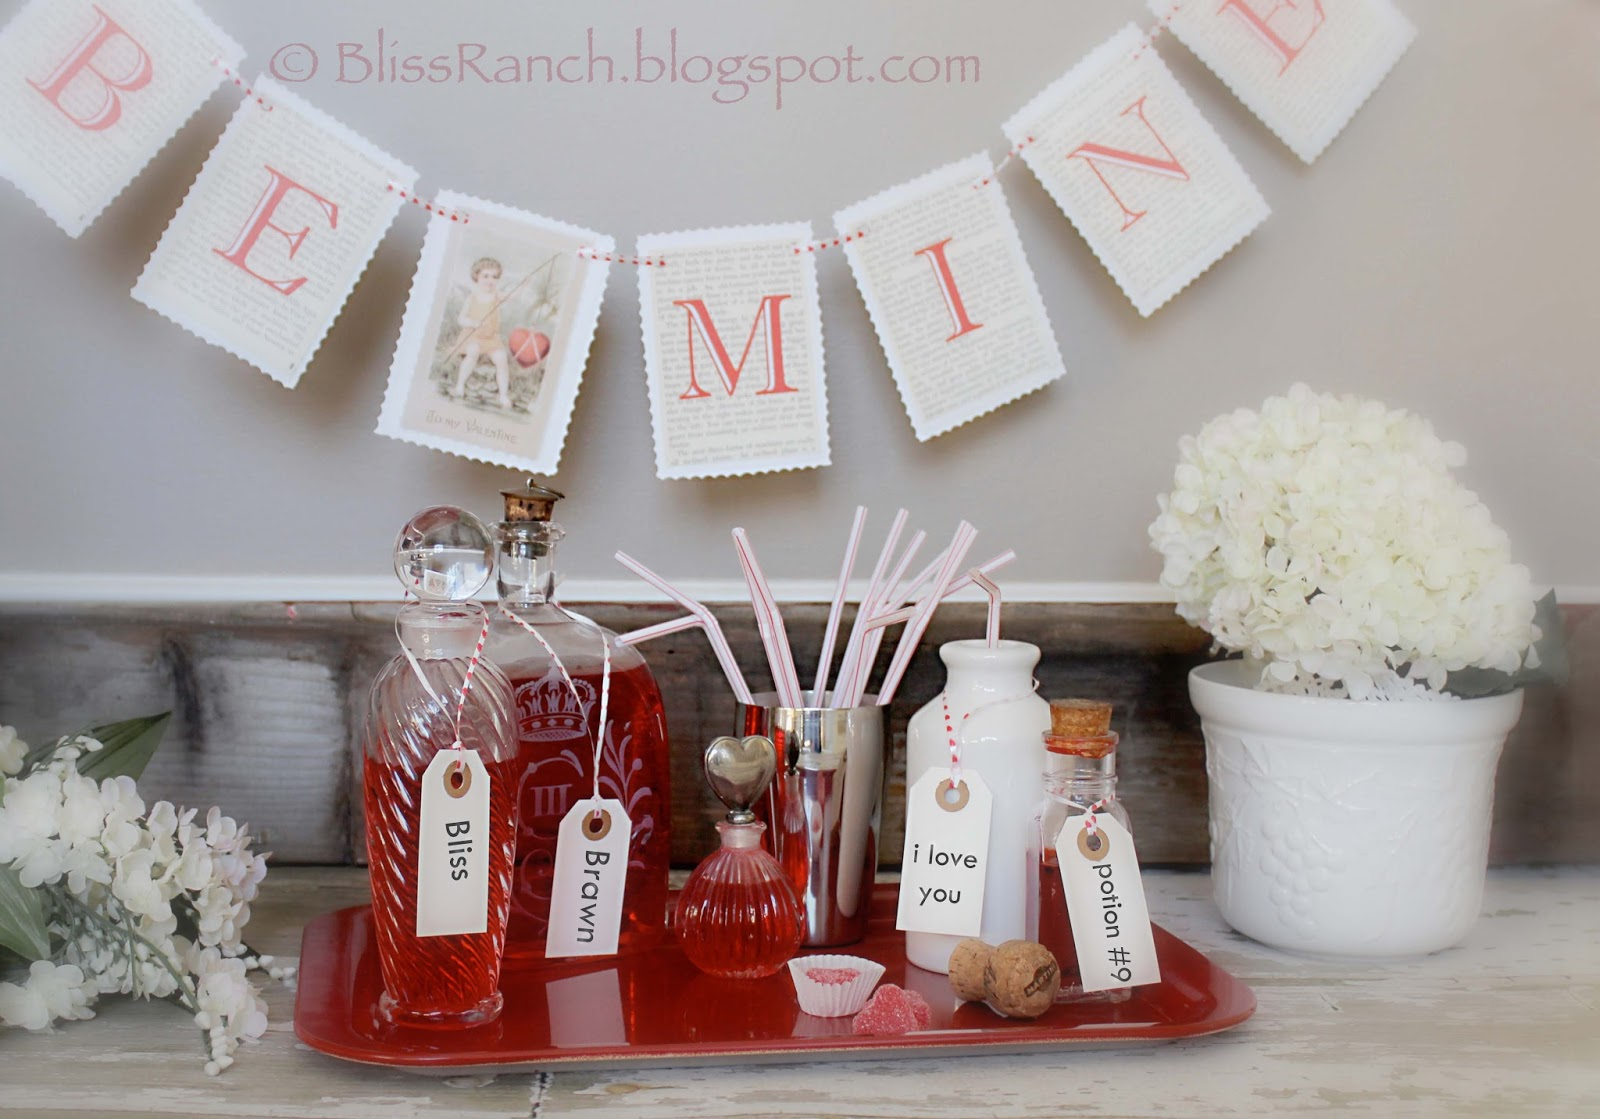 Valentine Vignette Bliss-Ranch.com